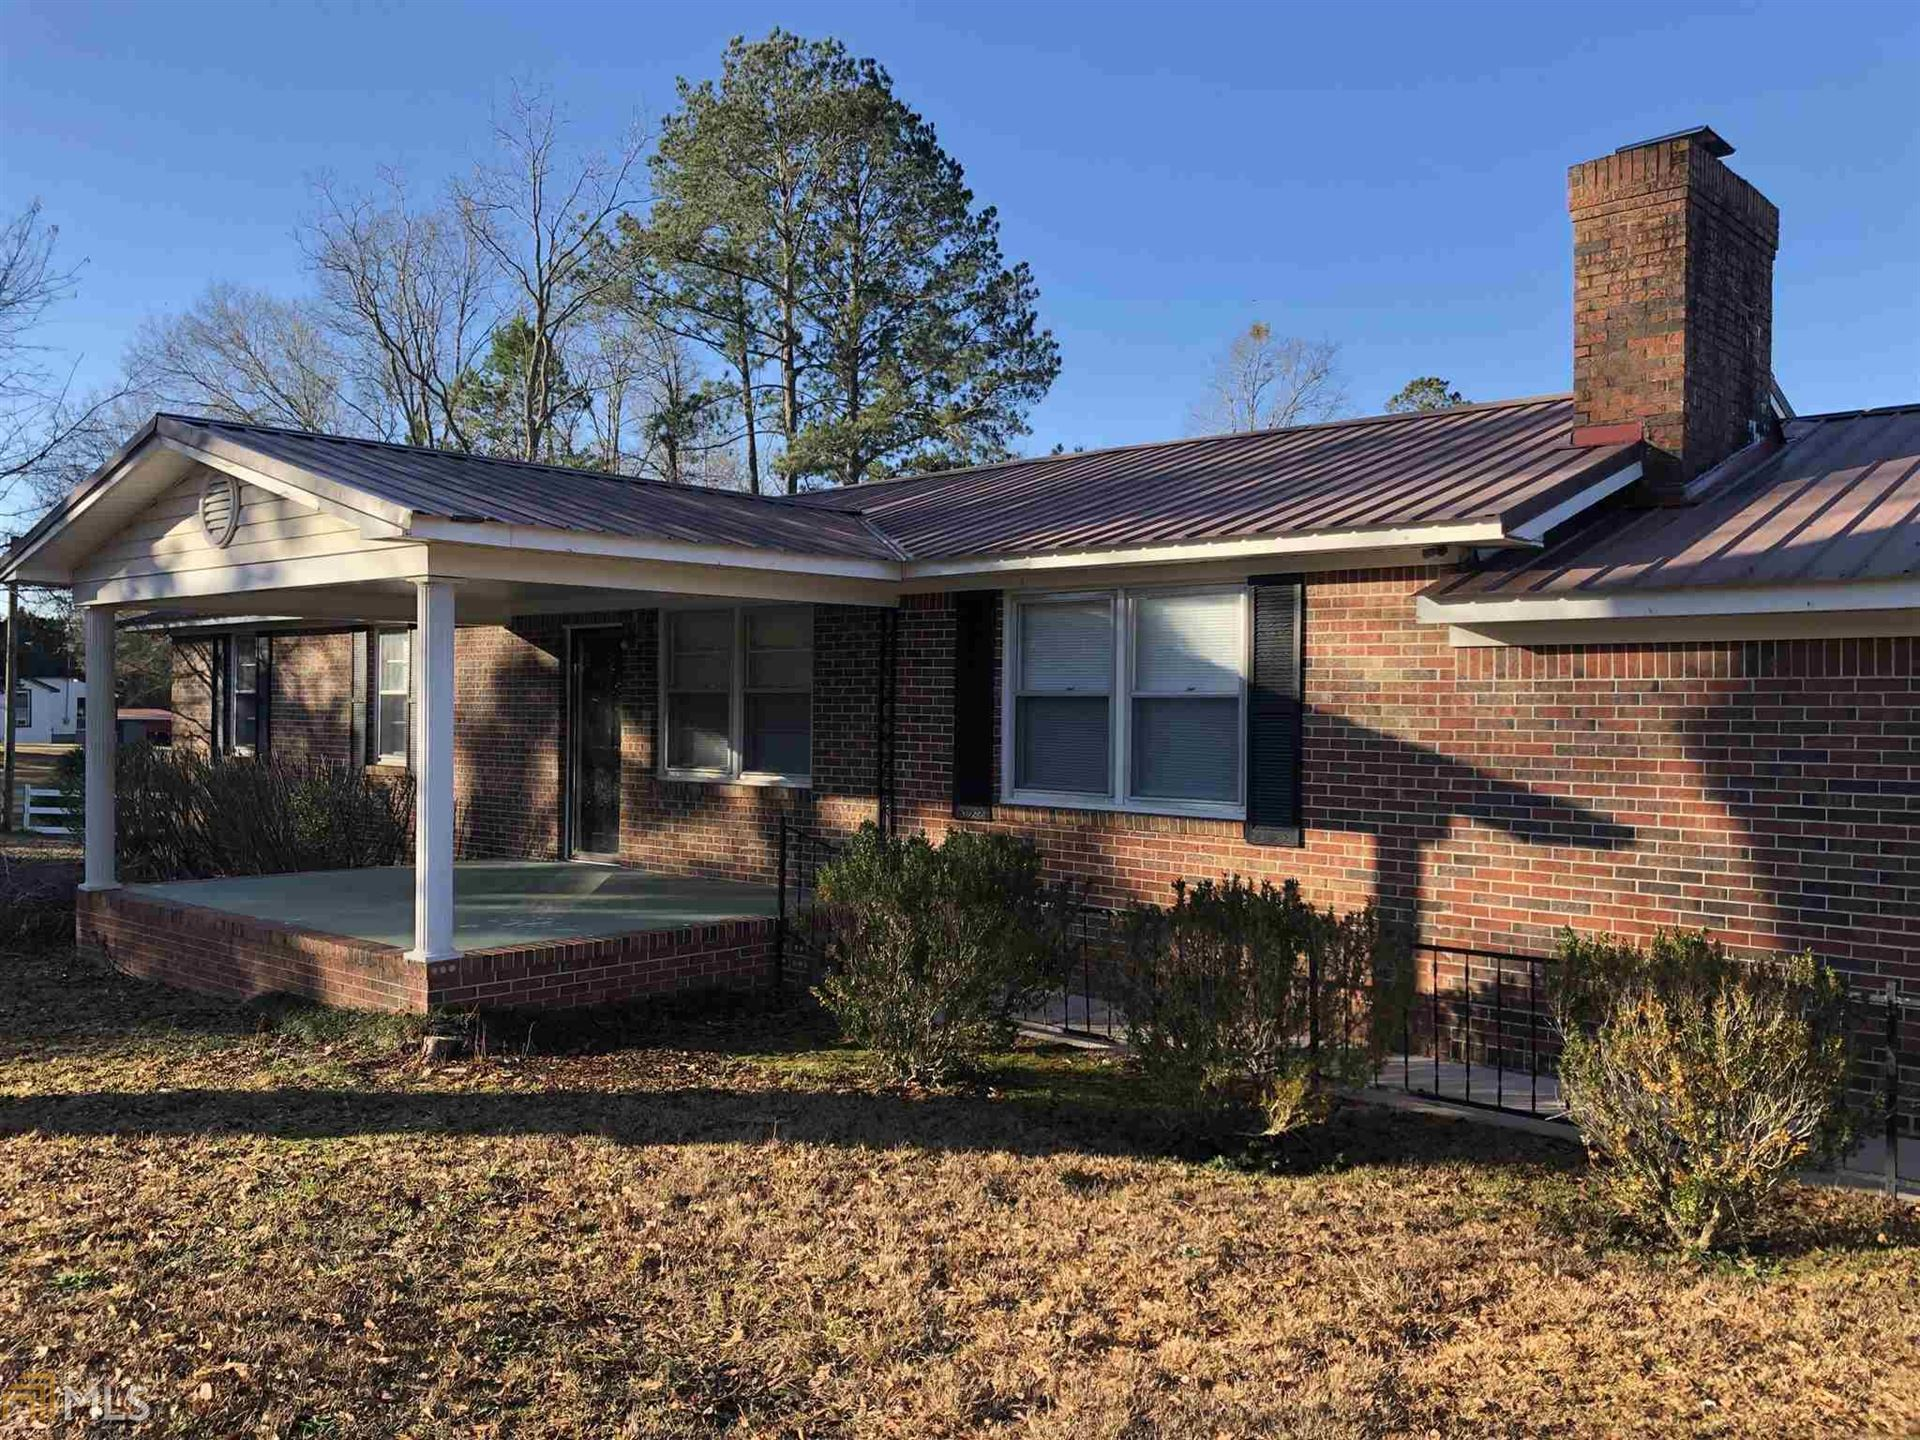 199 Old Pyne Rd, LaGrange, GA 30240 - MLS#: 8883139